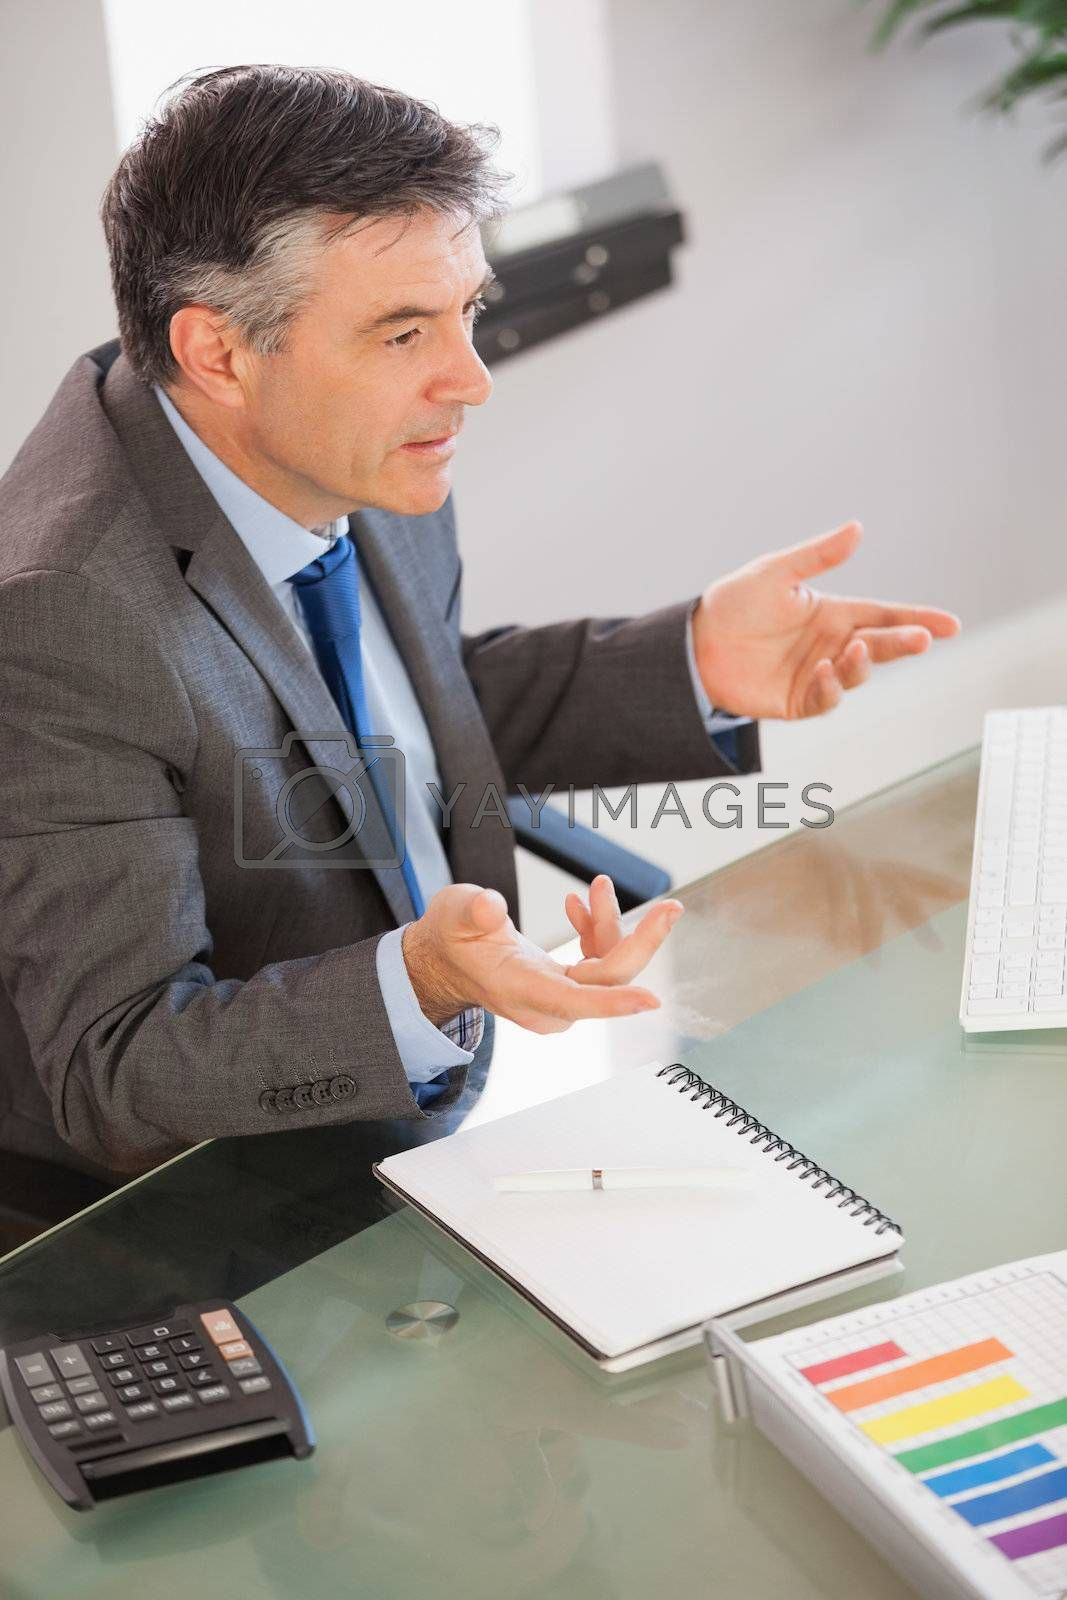 A businessman sitting at his desk explaining something  by Wavebreakmedia